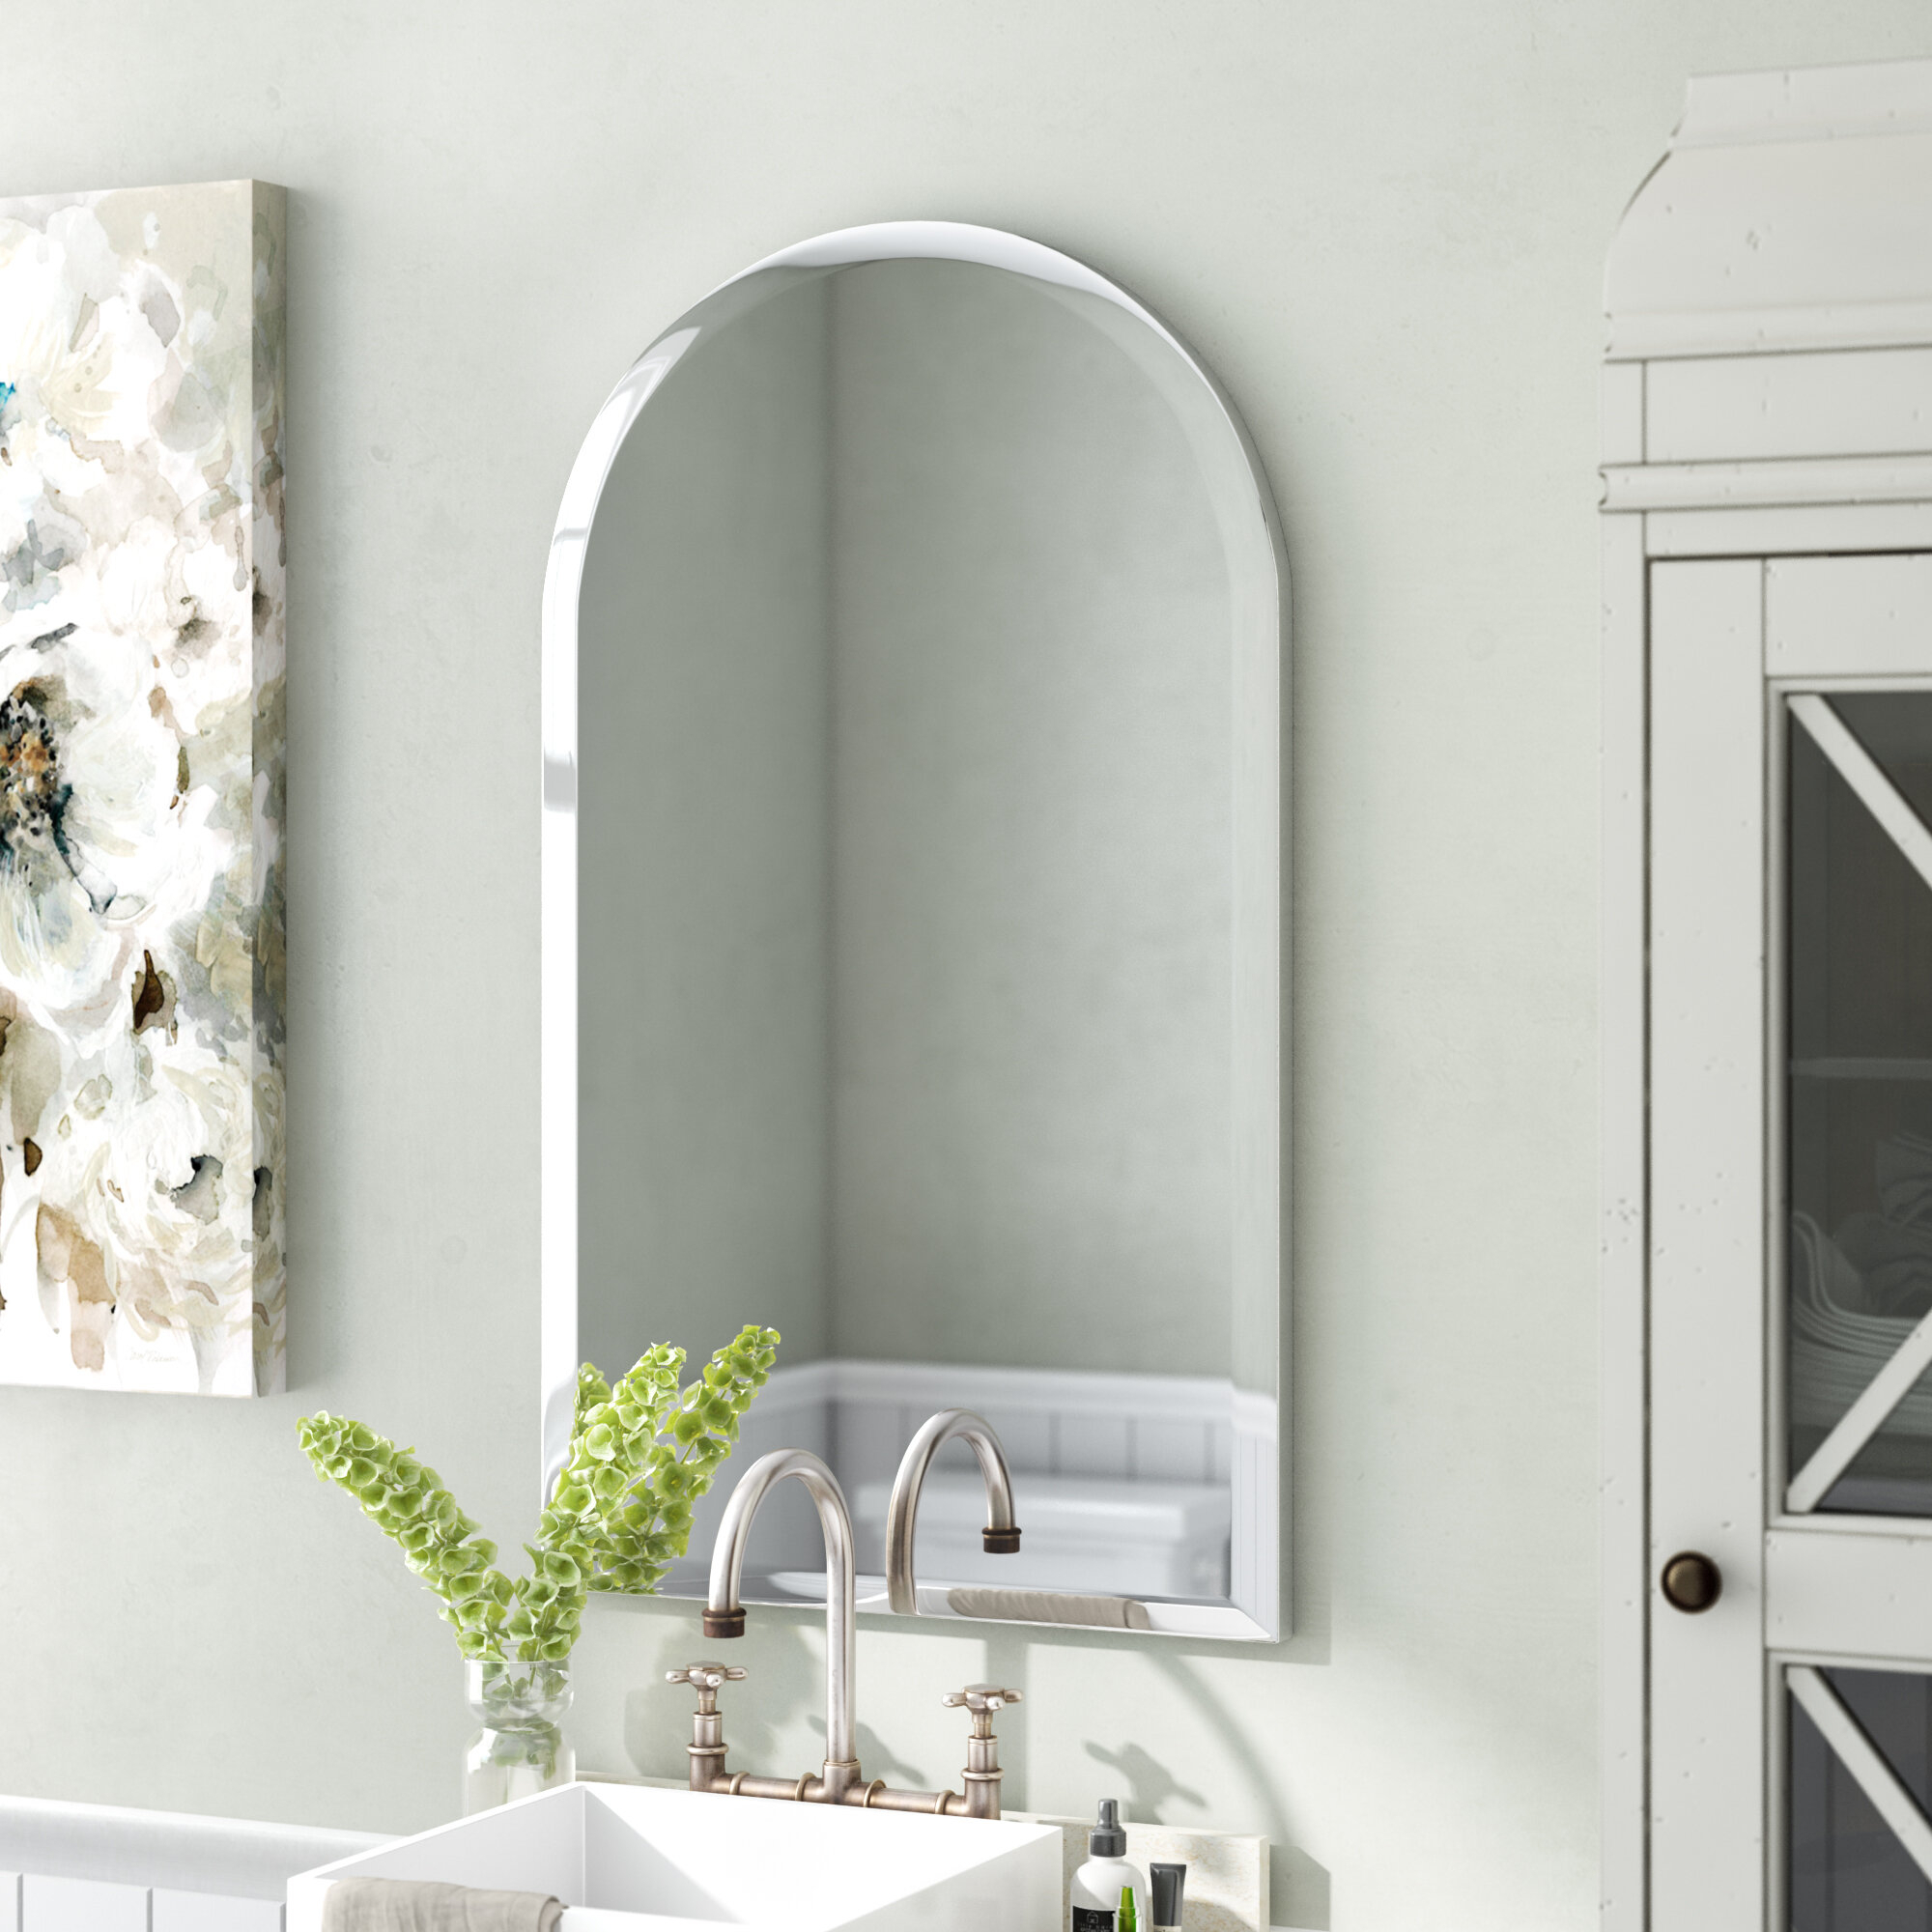 Cathedral Arch Mirror | Wayfair Intended For Fifi Contemporary Arch Wall Mirrors (View 20 of 20)